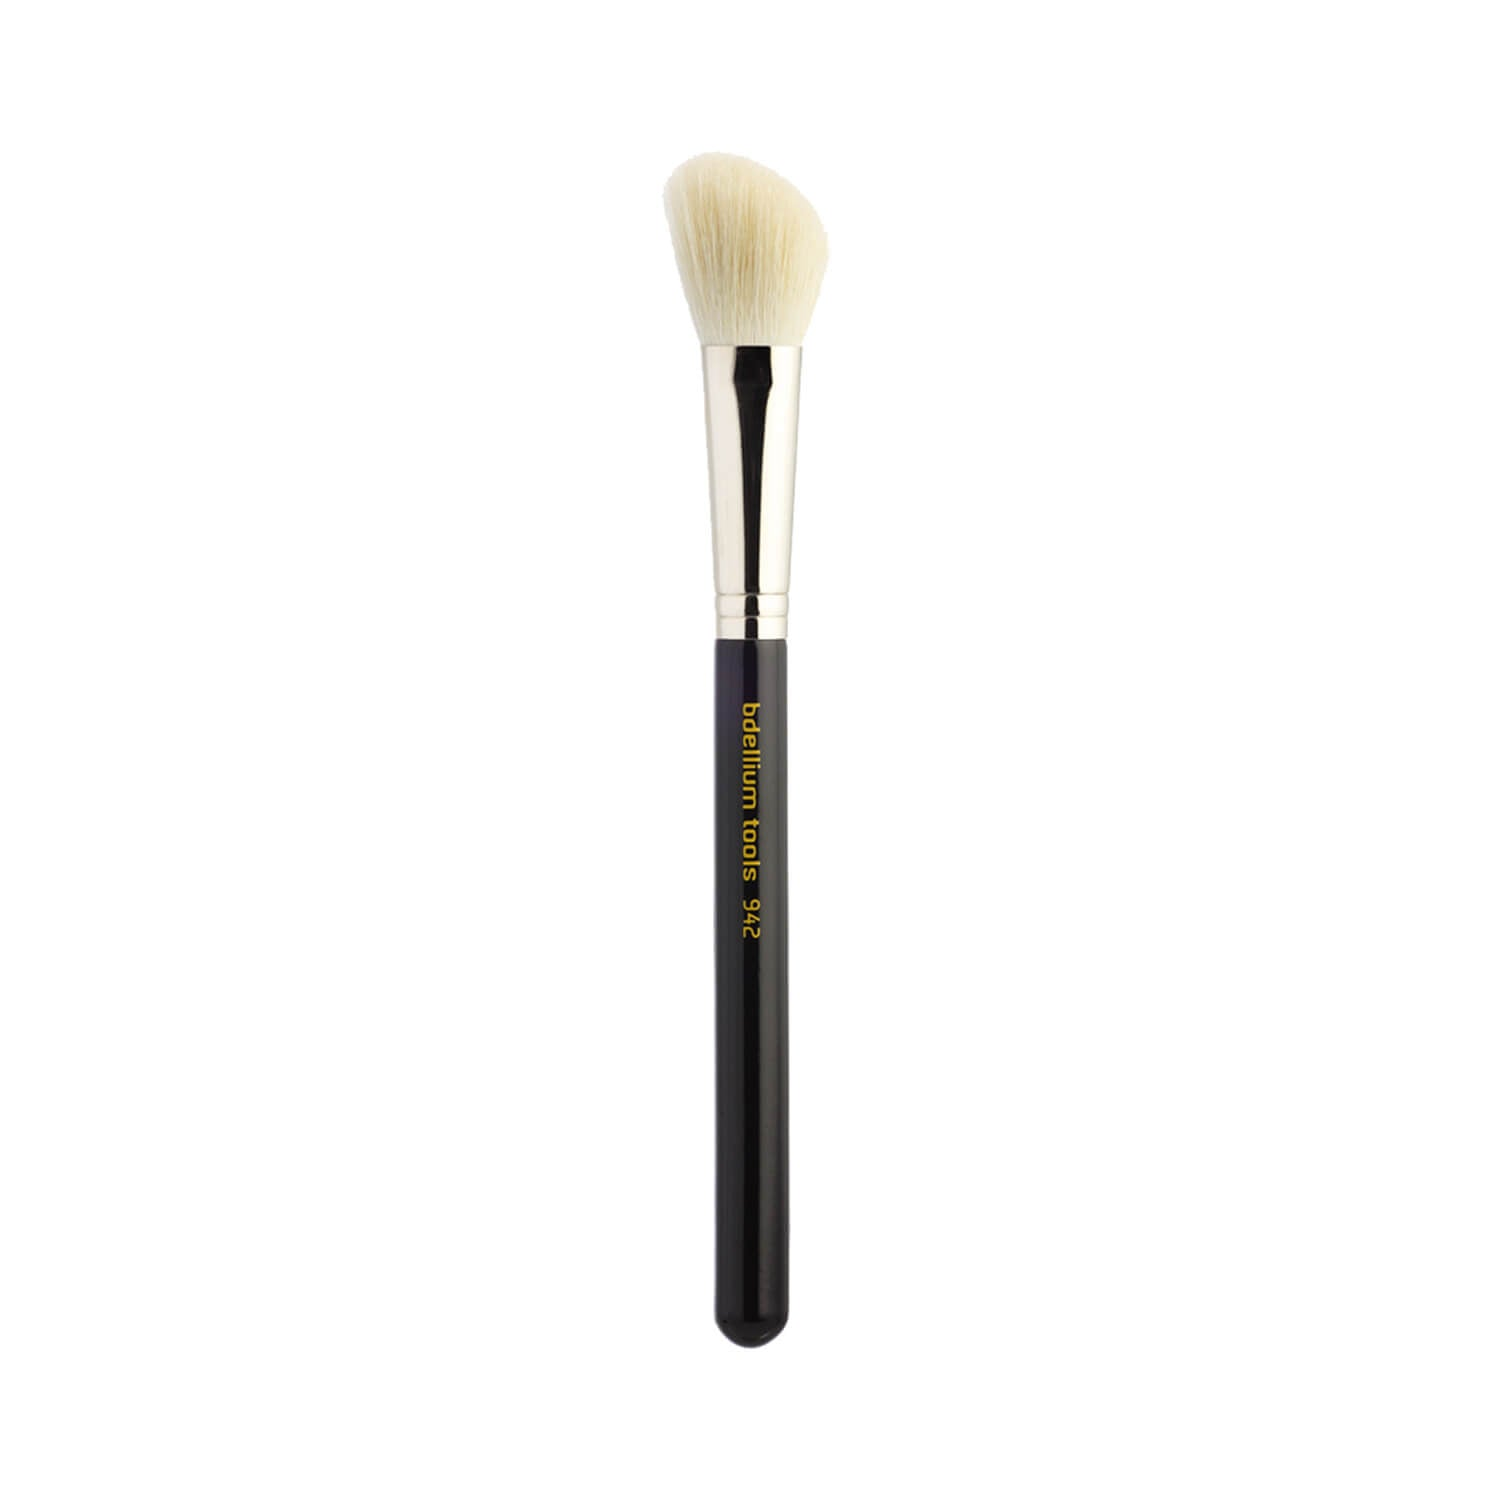 BDellium Tools Maestro Line 942 Slanted Contour Brush Black